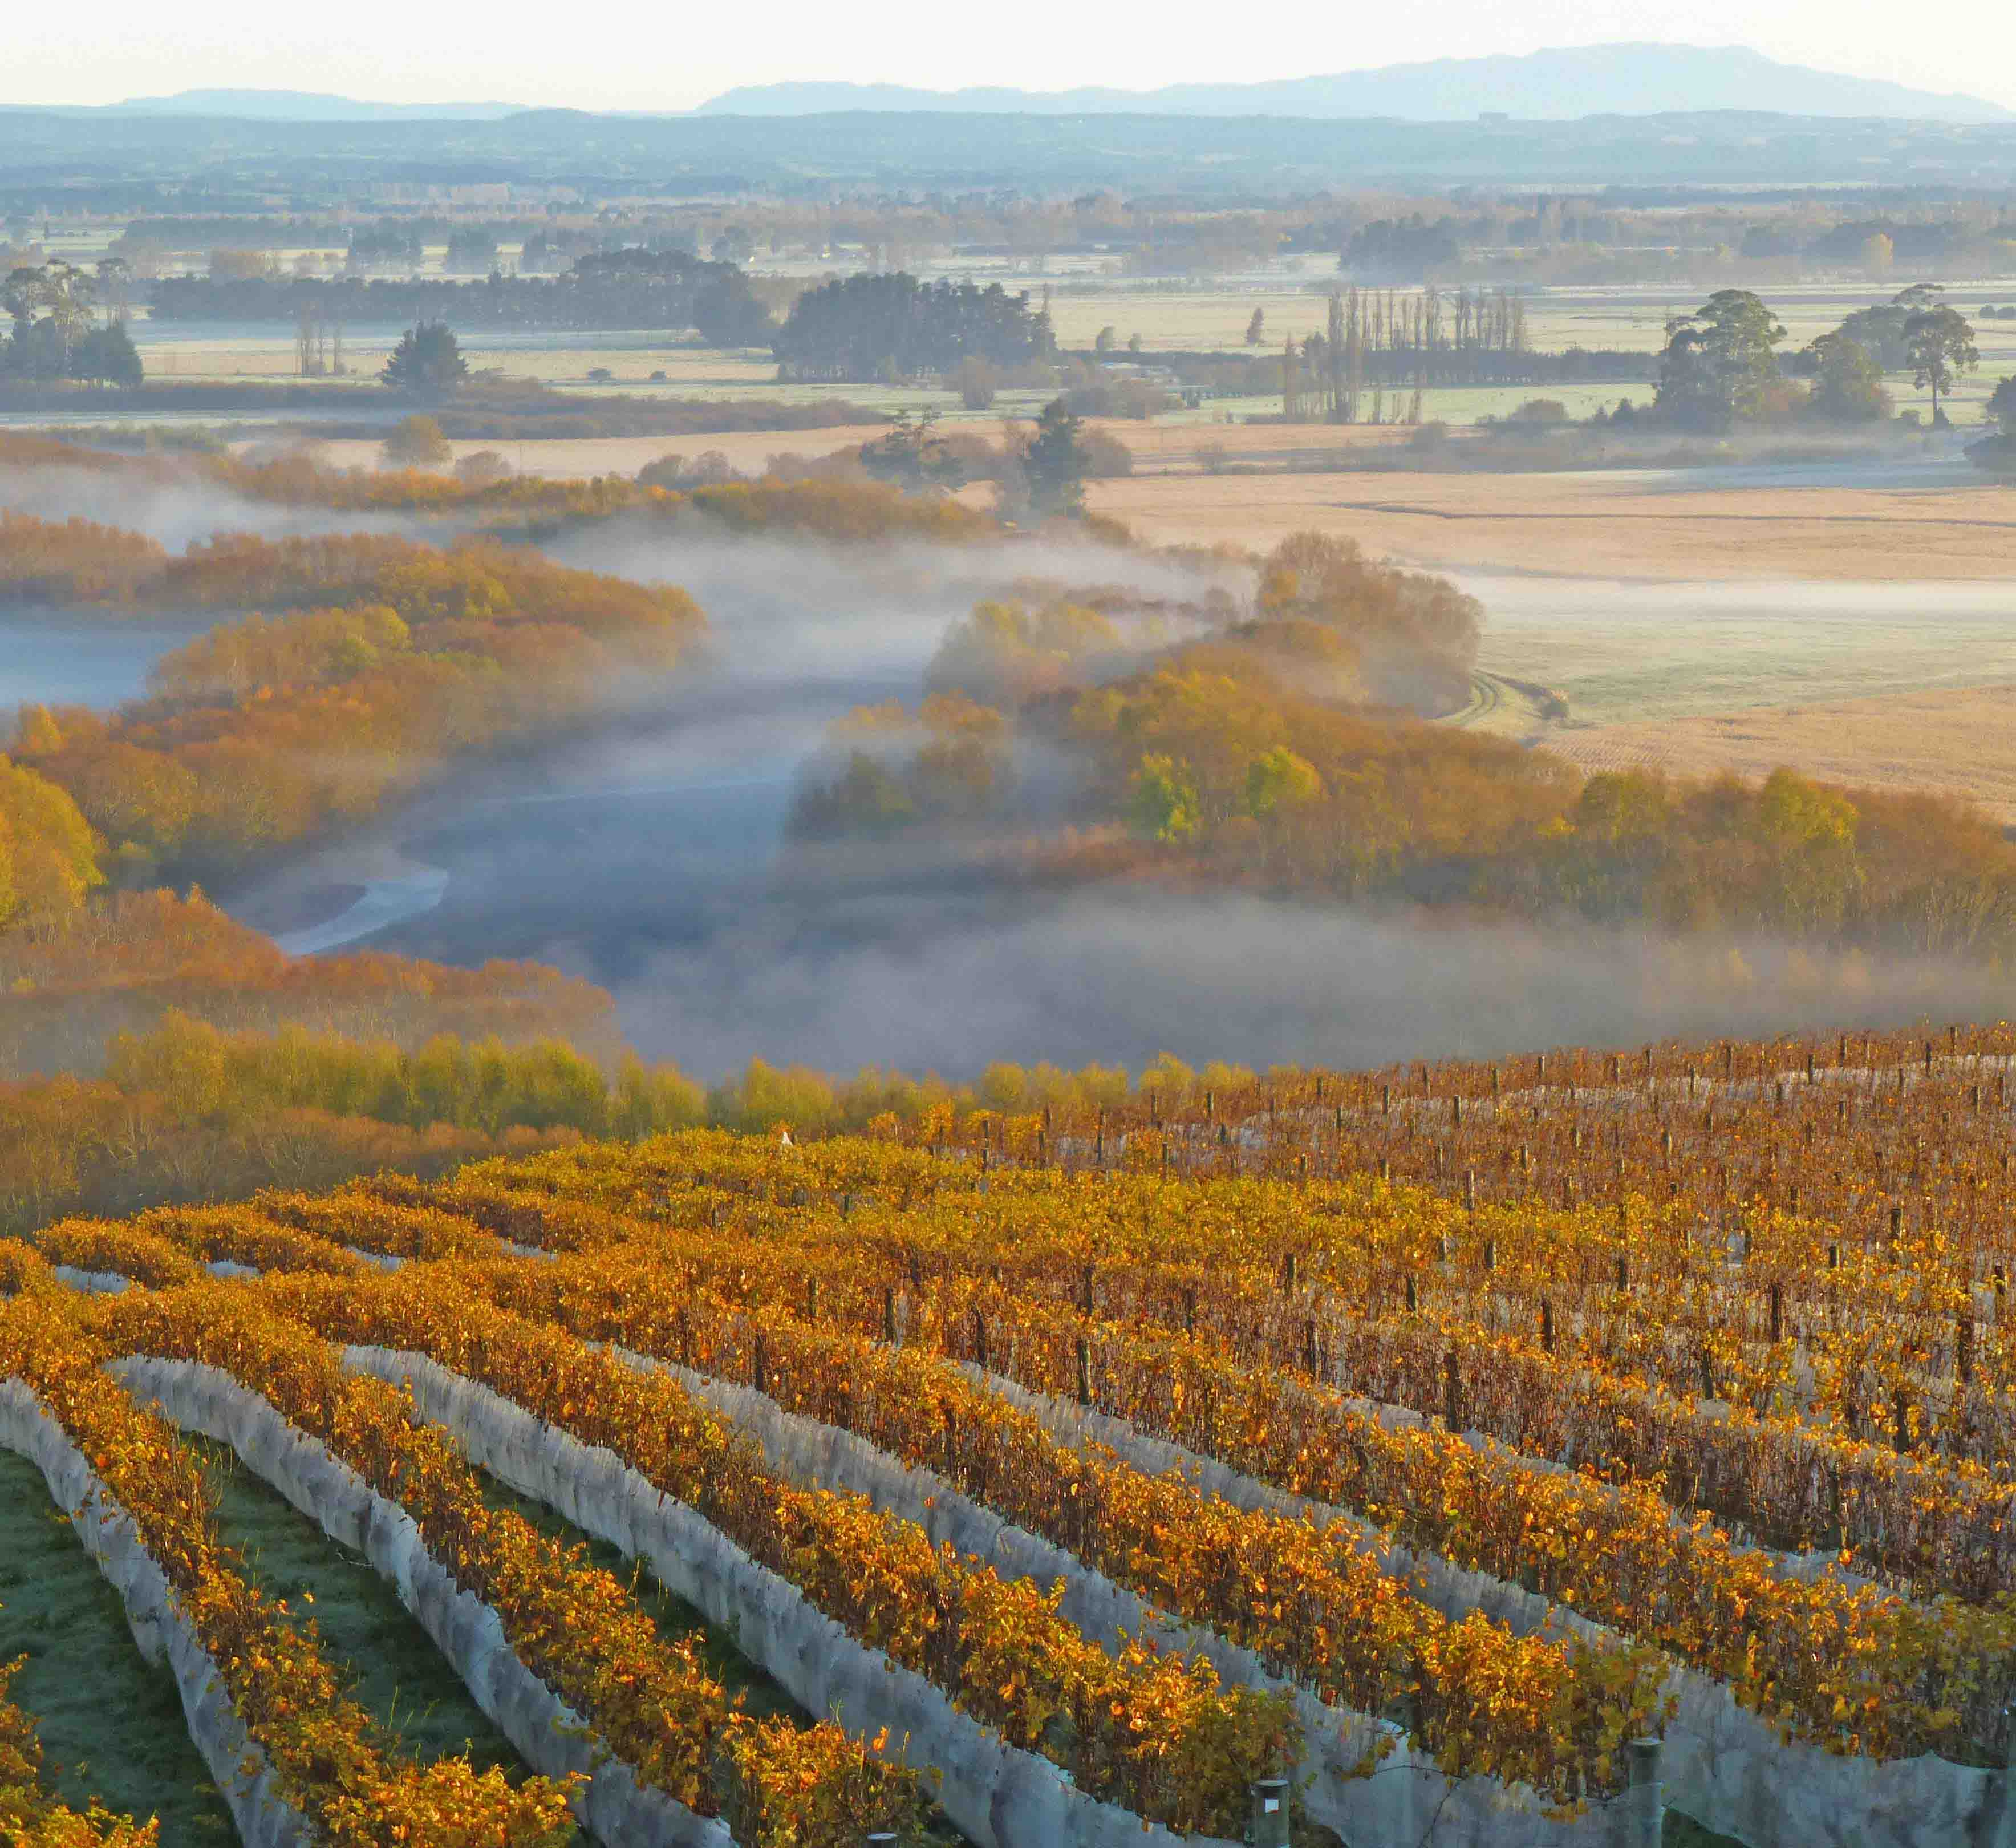 Image of Limestone Vineyard, Winery & Venue in New Zealand